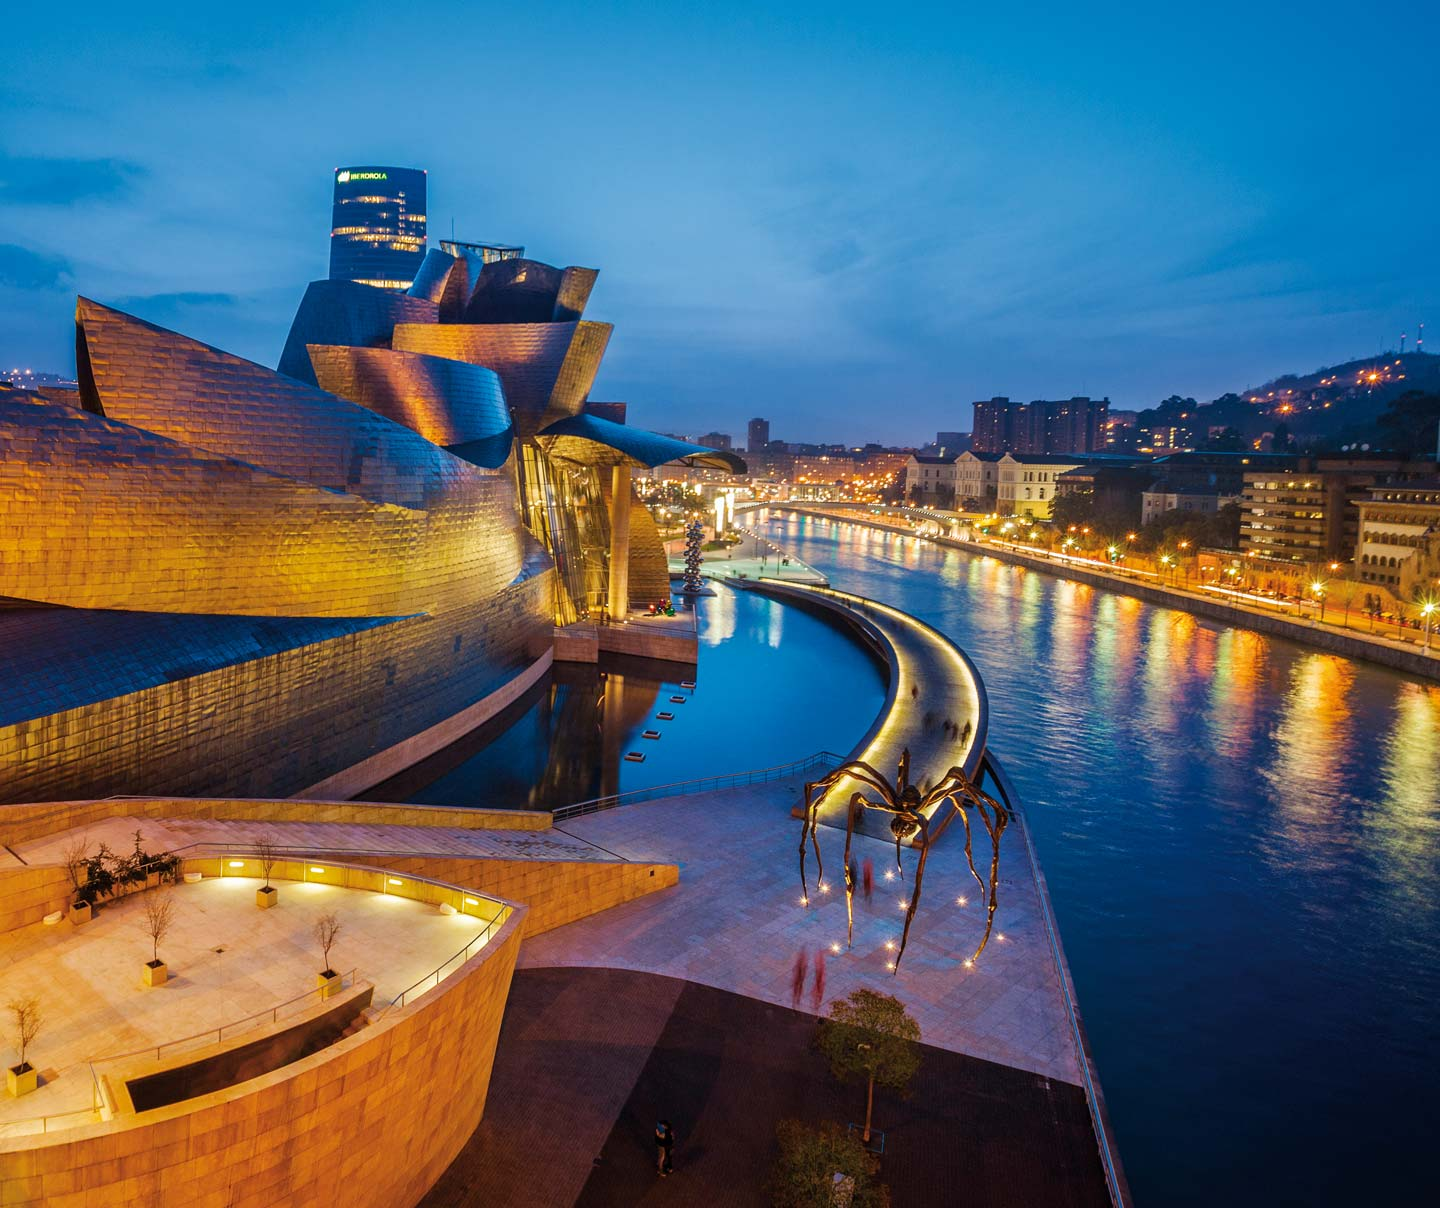 Walking tour of twenty-first-century Bilbao